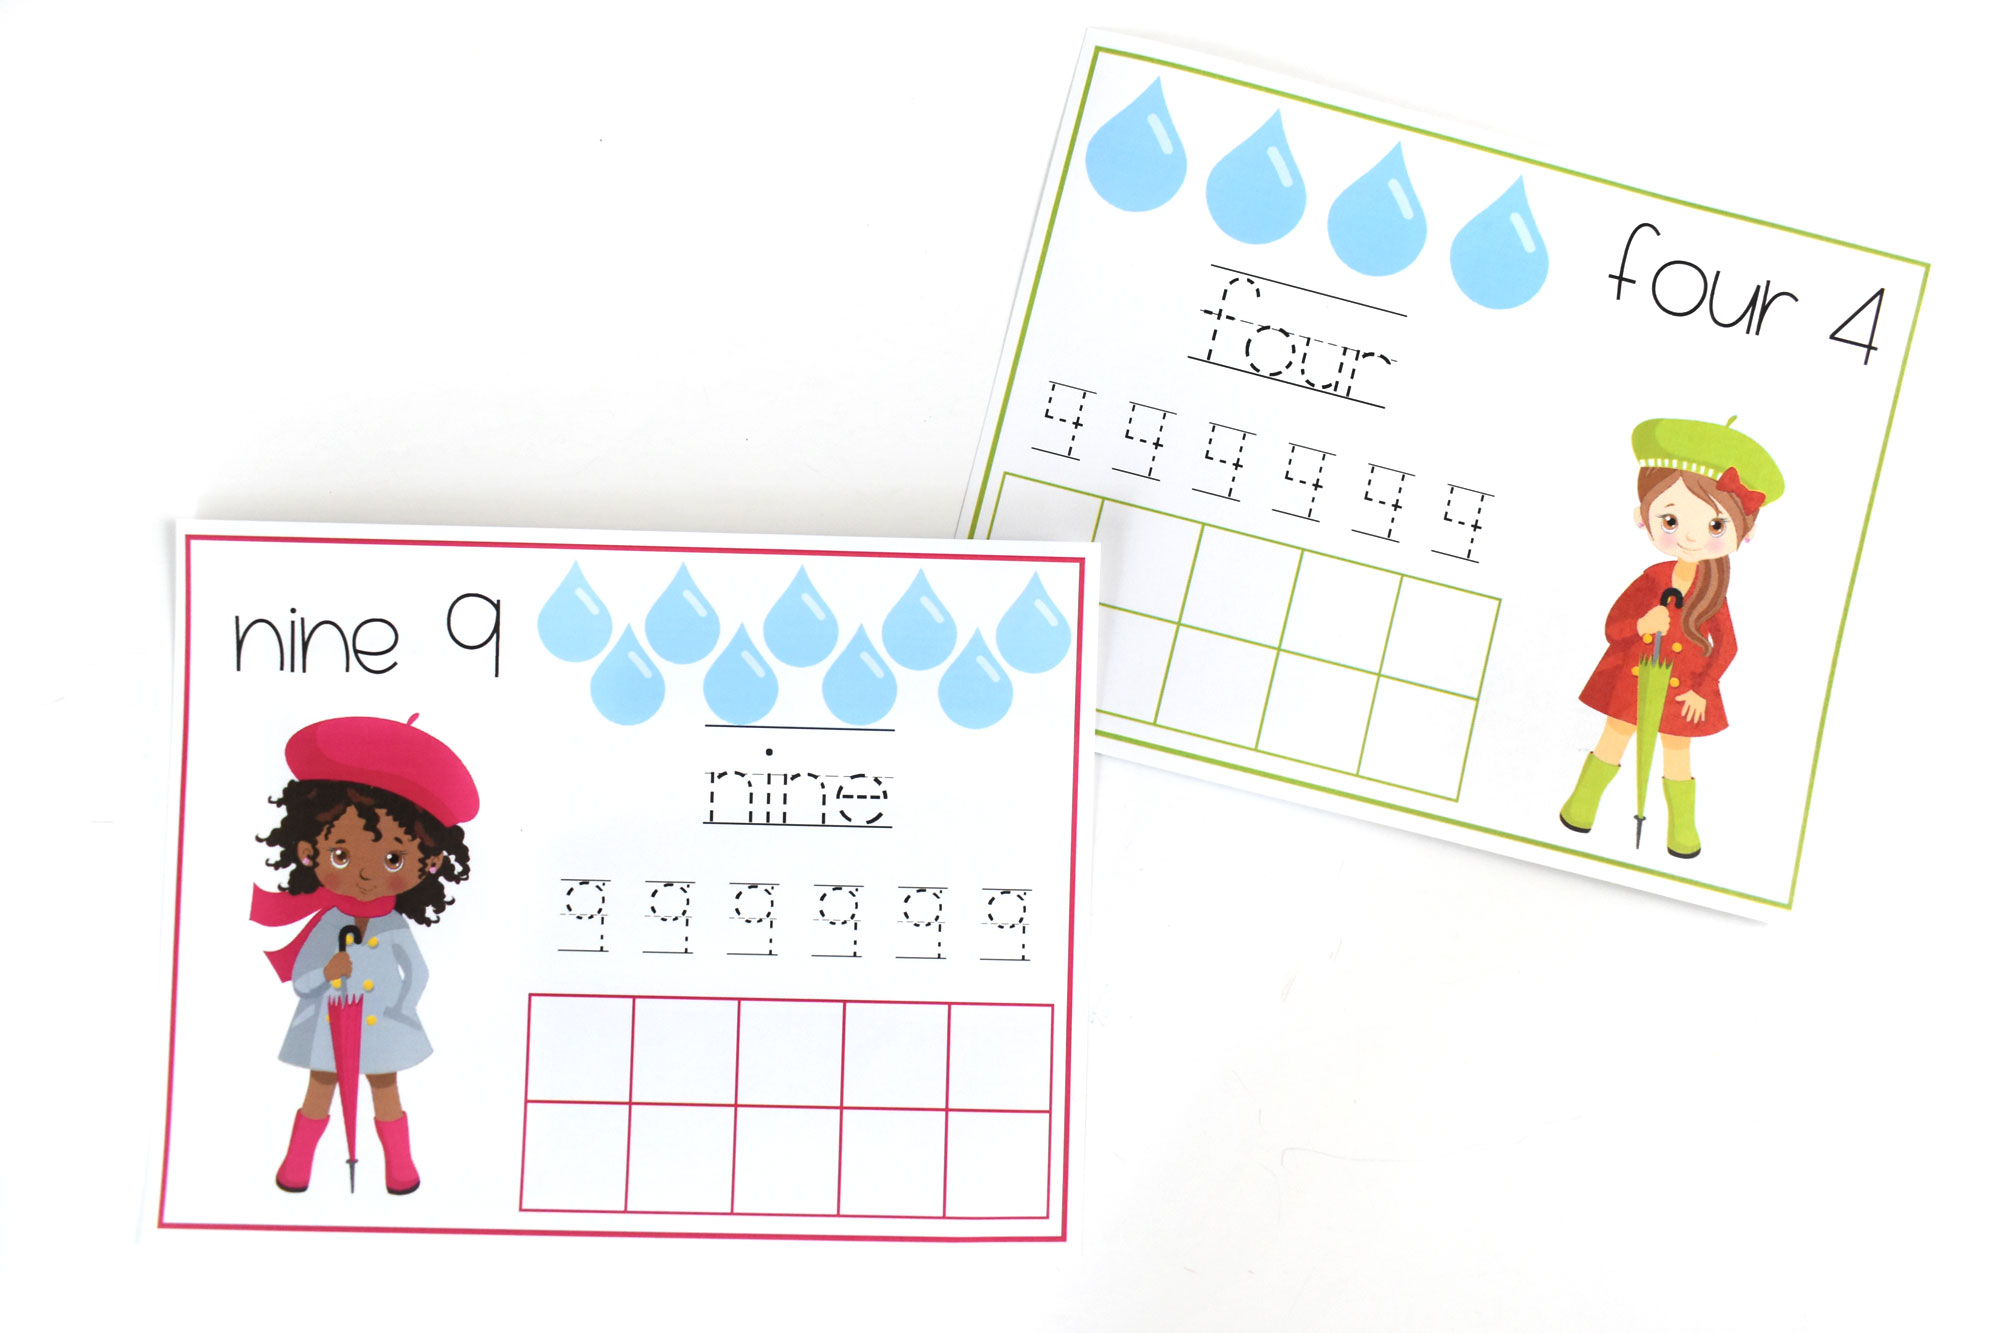 Spring Counting Raindrops Printable Pages for Kids | HolidayPrintables.net #printables #holidayprintables #springpritnables #countingpages #math #preschoolprintables #educationprintables #homeschoolprintables #weloveprintables